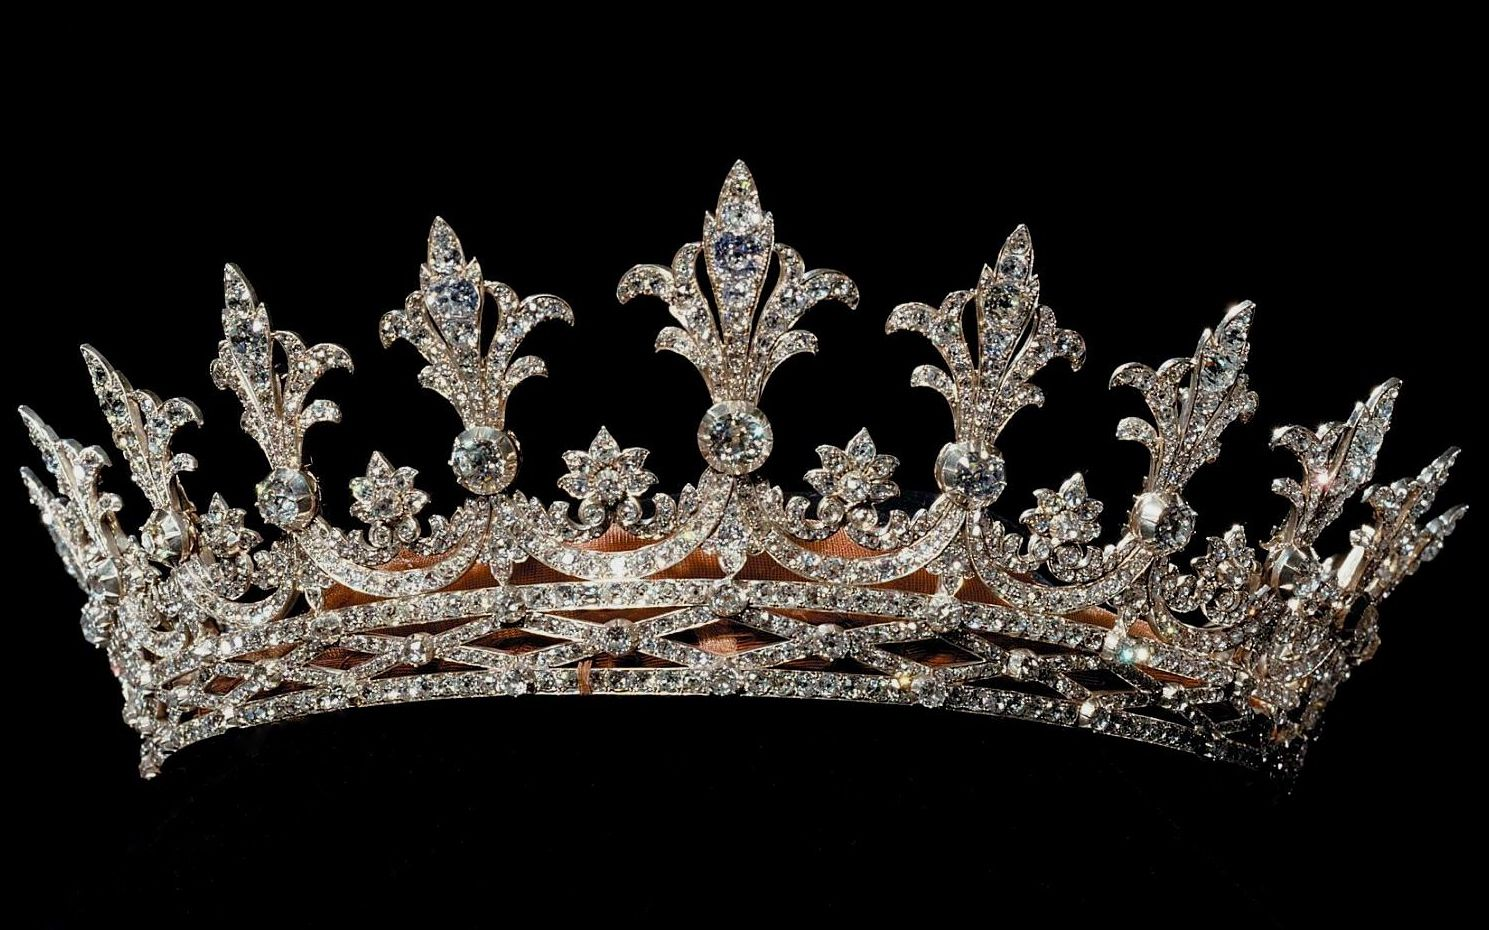 Hesse Diamond Tiara, Germany (1862; diamonds). Owned by Alice, Grand Duchess of Hesse and the Rhine.